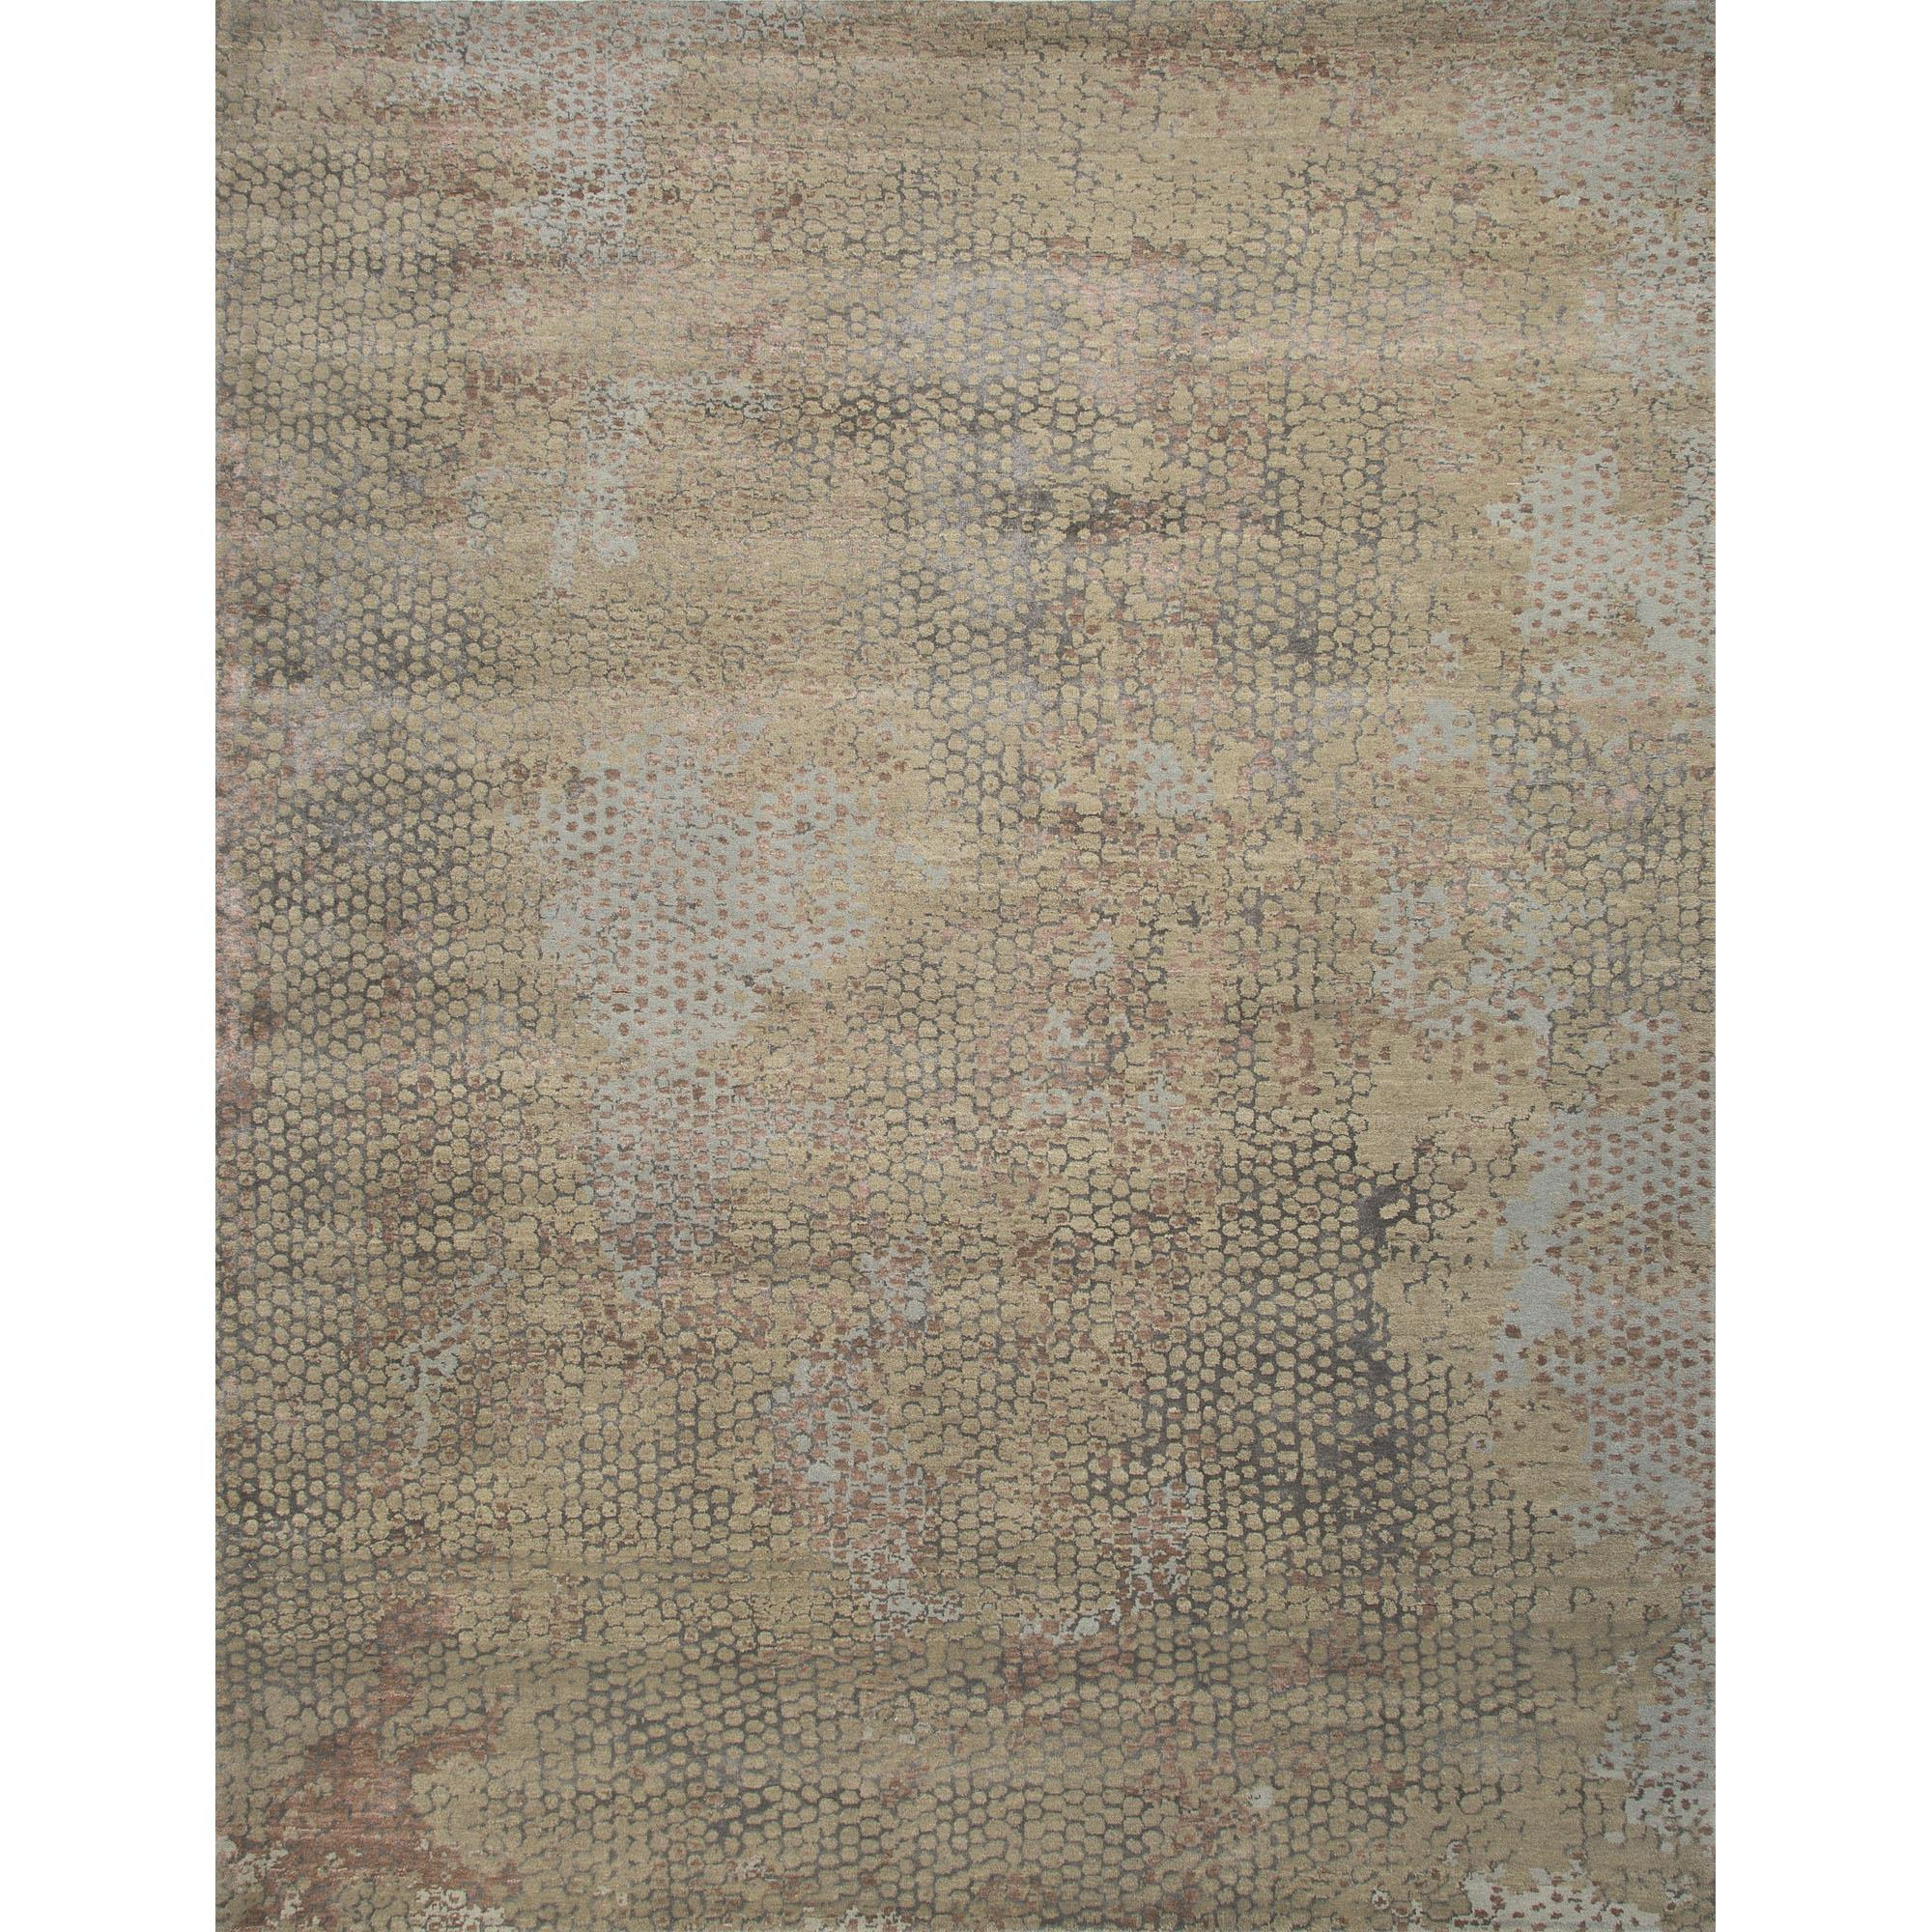 JAIPUR Rugs Chaos Theory By Kavi 8 x 10 Rug - Item Number: RUG116988